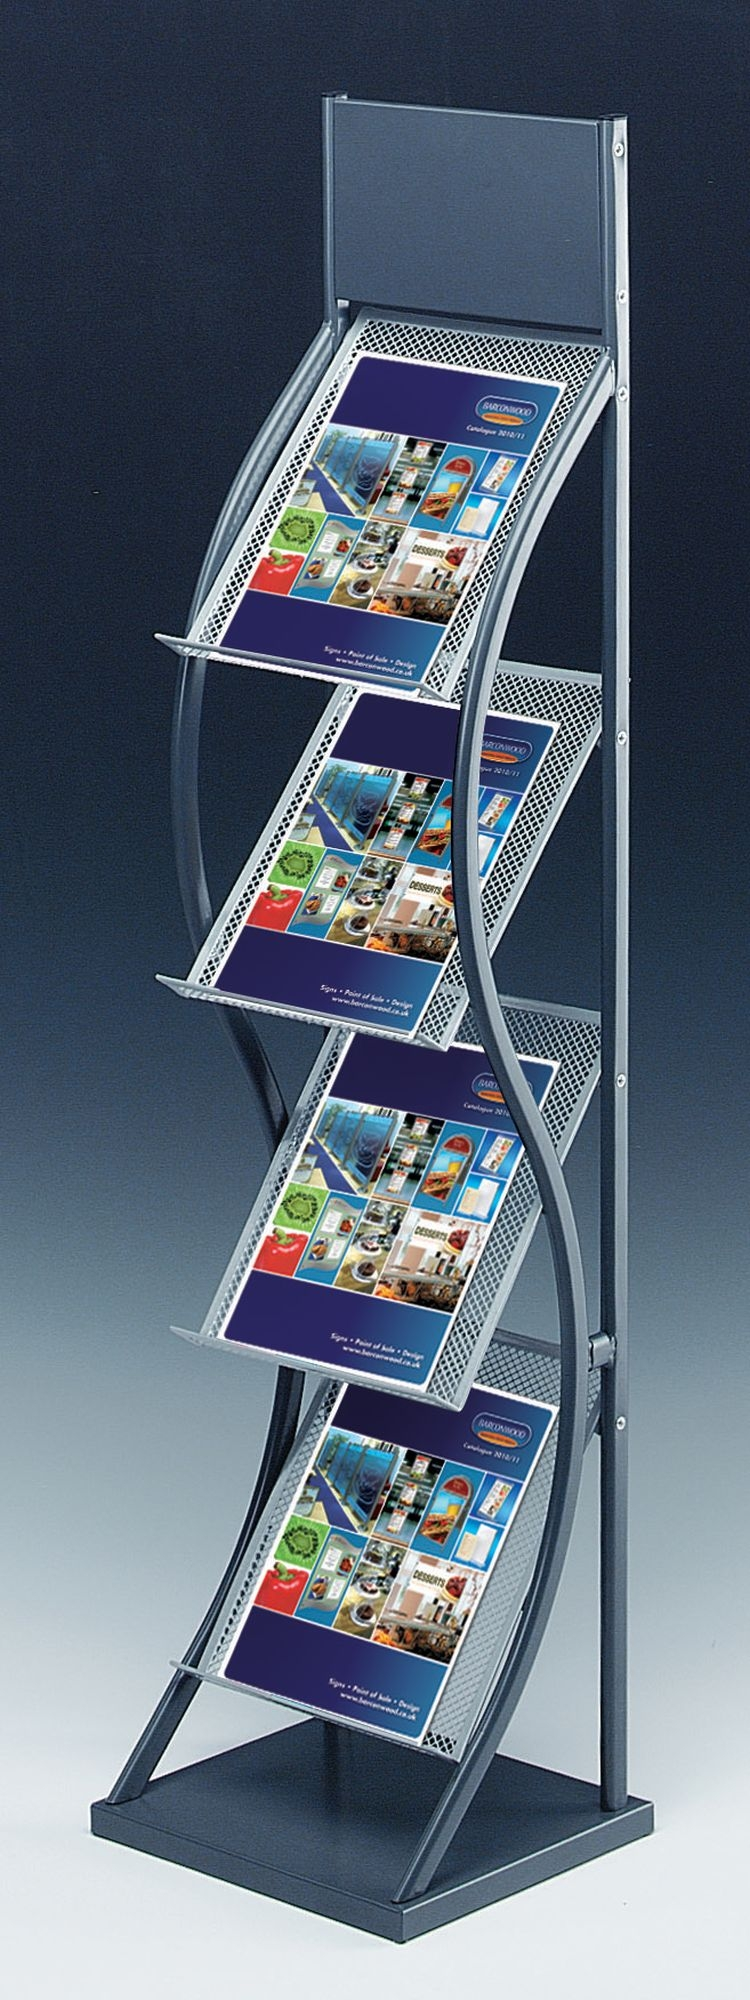 All Metal Brochure Holder Floor Stand Displaysbarconwood